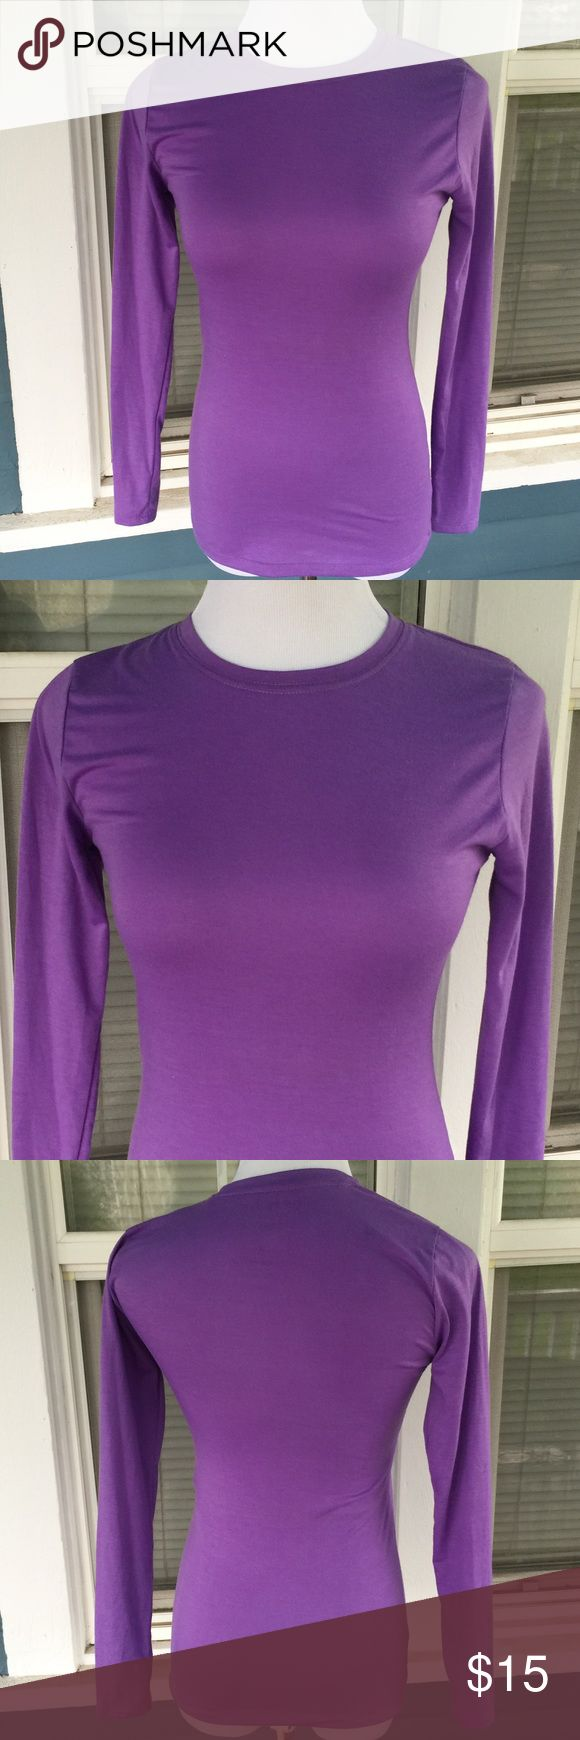 "SCRUBS & BEYOND Long Sleeve Undershirt Tee SCRUBS & BEYOND Purple Long Sleeve Undershirt Tee.   Long sleeves.   Crew neckline.  Light purple cotton/spandex blend material.  Shoulder width 13"""".  Pit-to-pit 16"" (unstretched).   Length 26"" (shoulder to hem).  Great condition. Scrubs & Beyond Tops Tees - Long Sleeve"